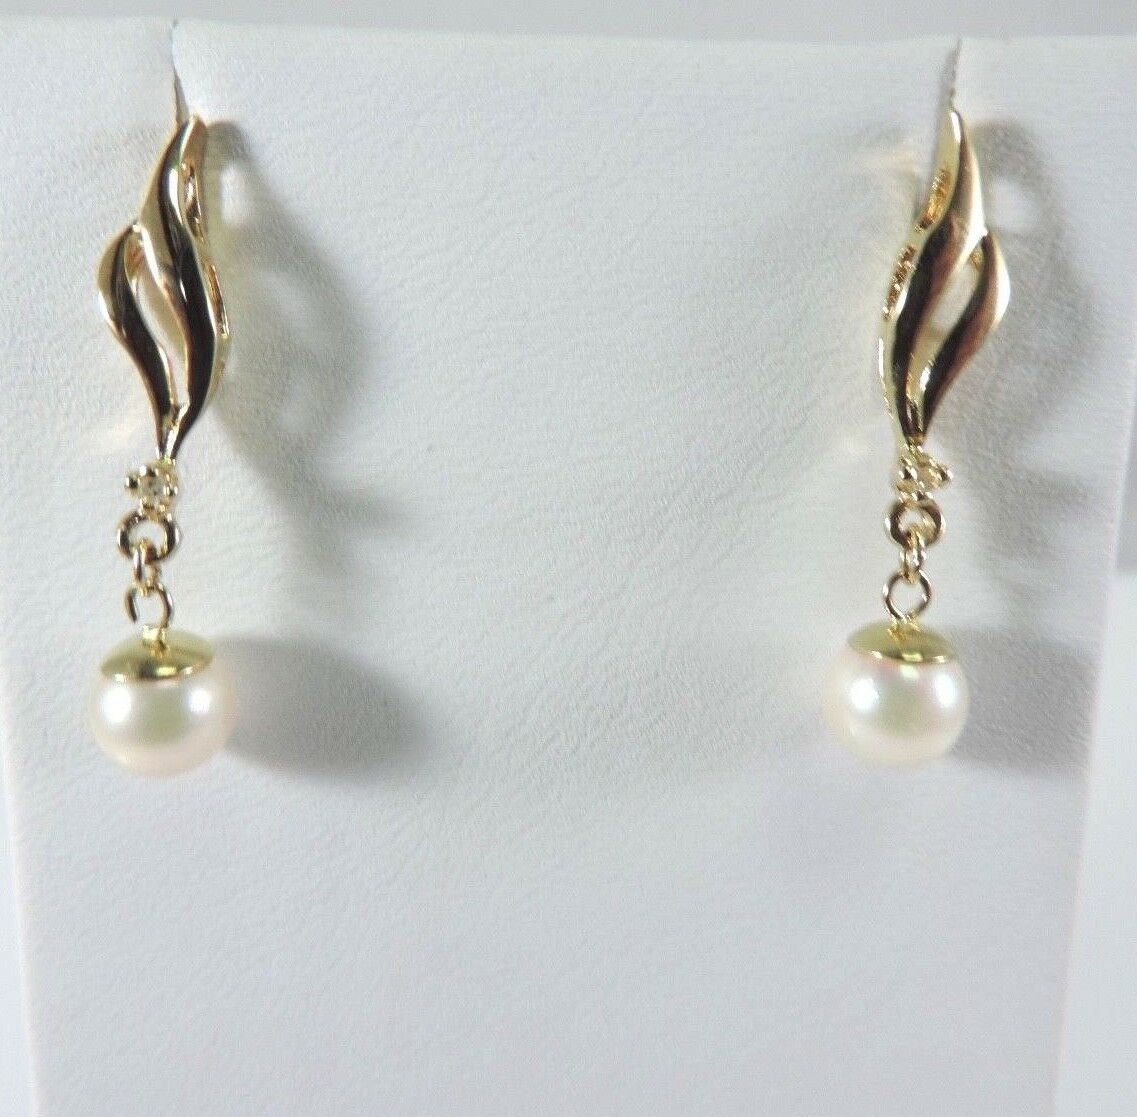 .585 14K YELLOW gold CULTURED PEARL & DIAMOND EARRINGS